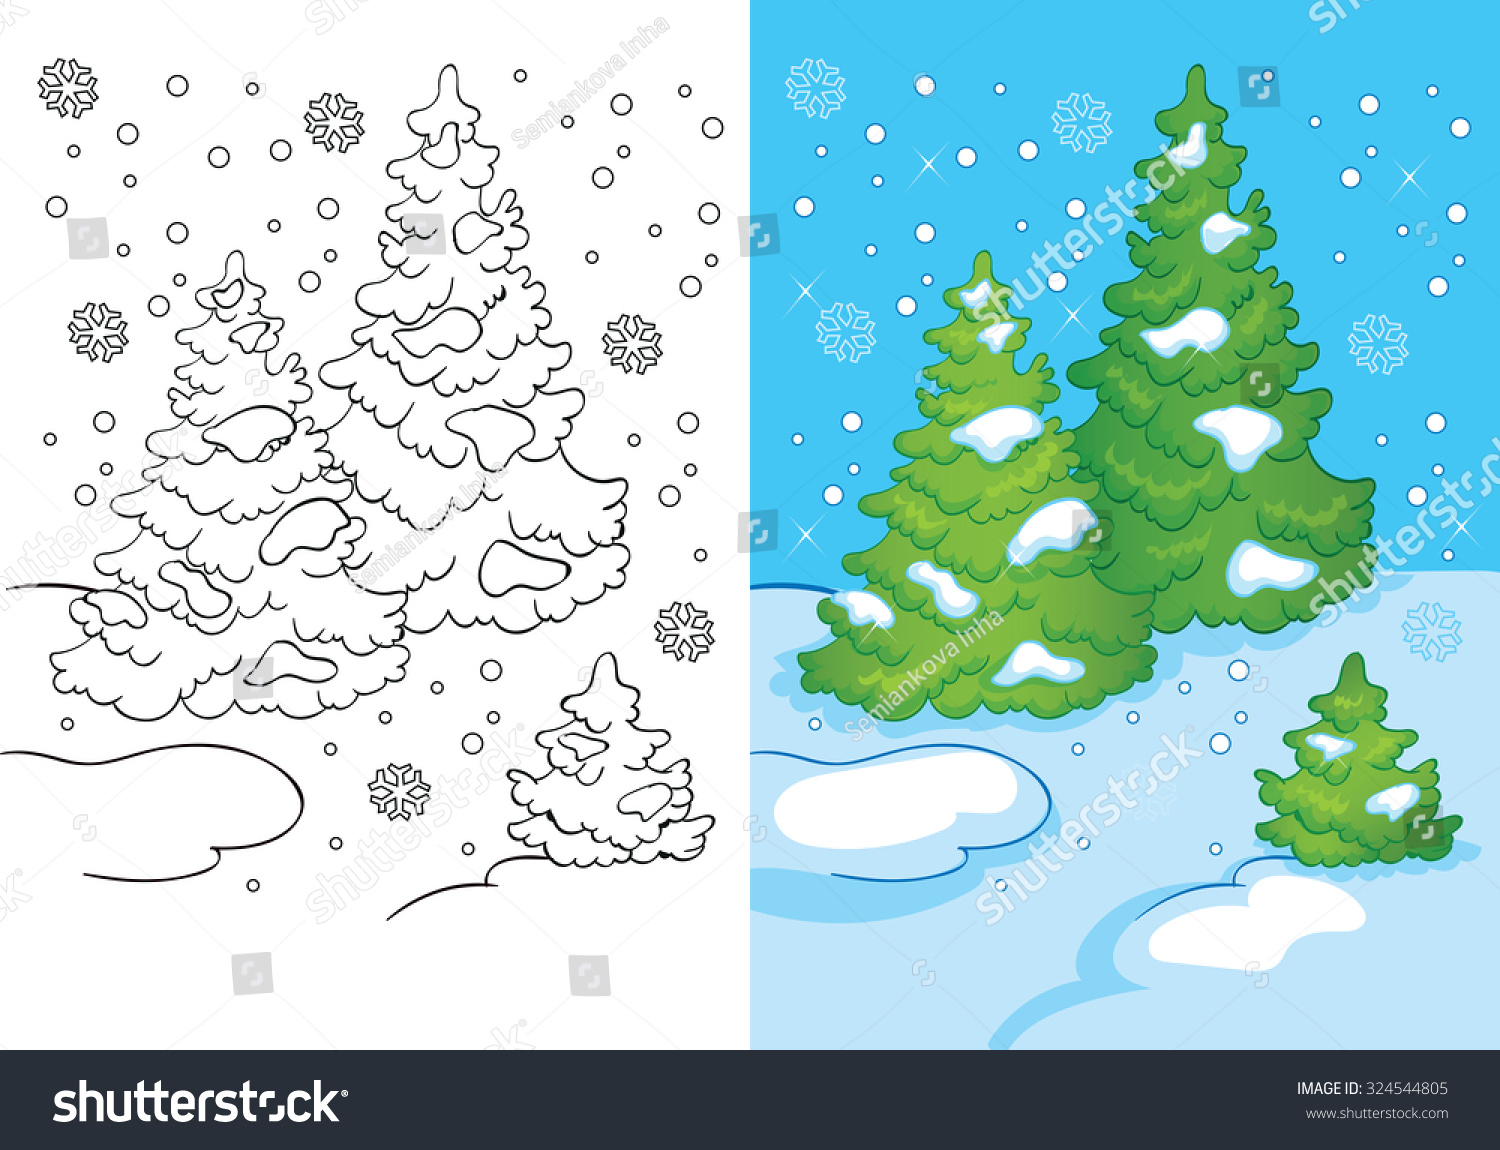 Coloring Book Cartoon Christmas Illustration Snowy Stock Vector ...